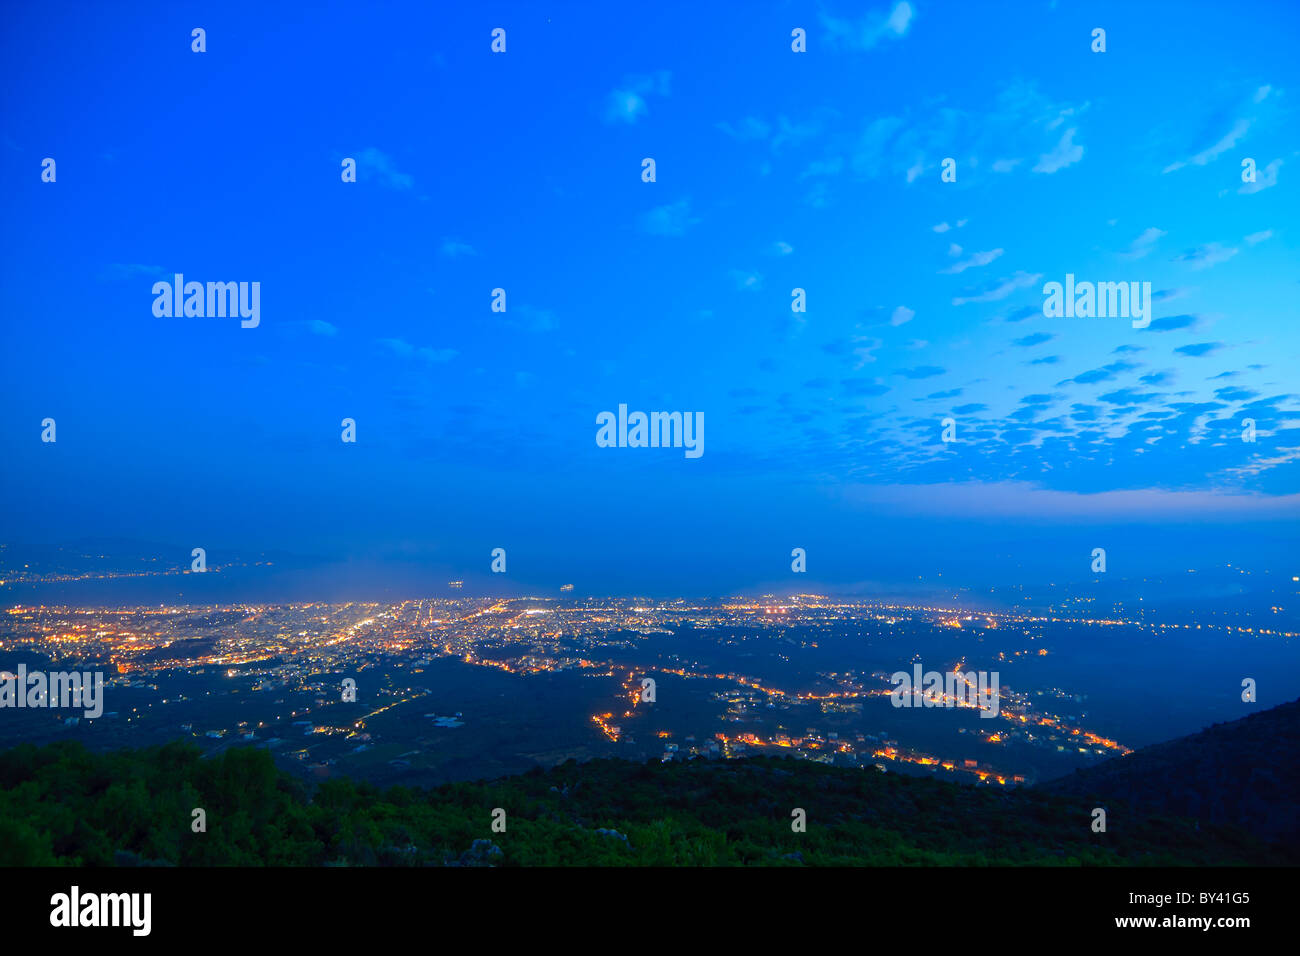 Greek city skyline at blue hour - Stock Image